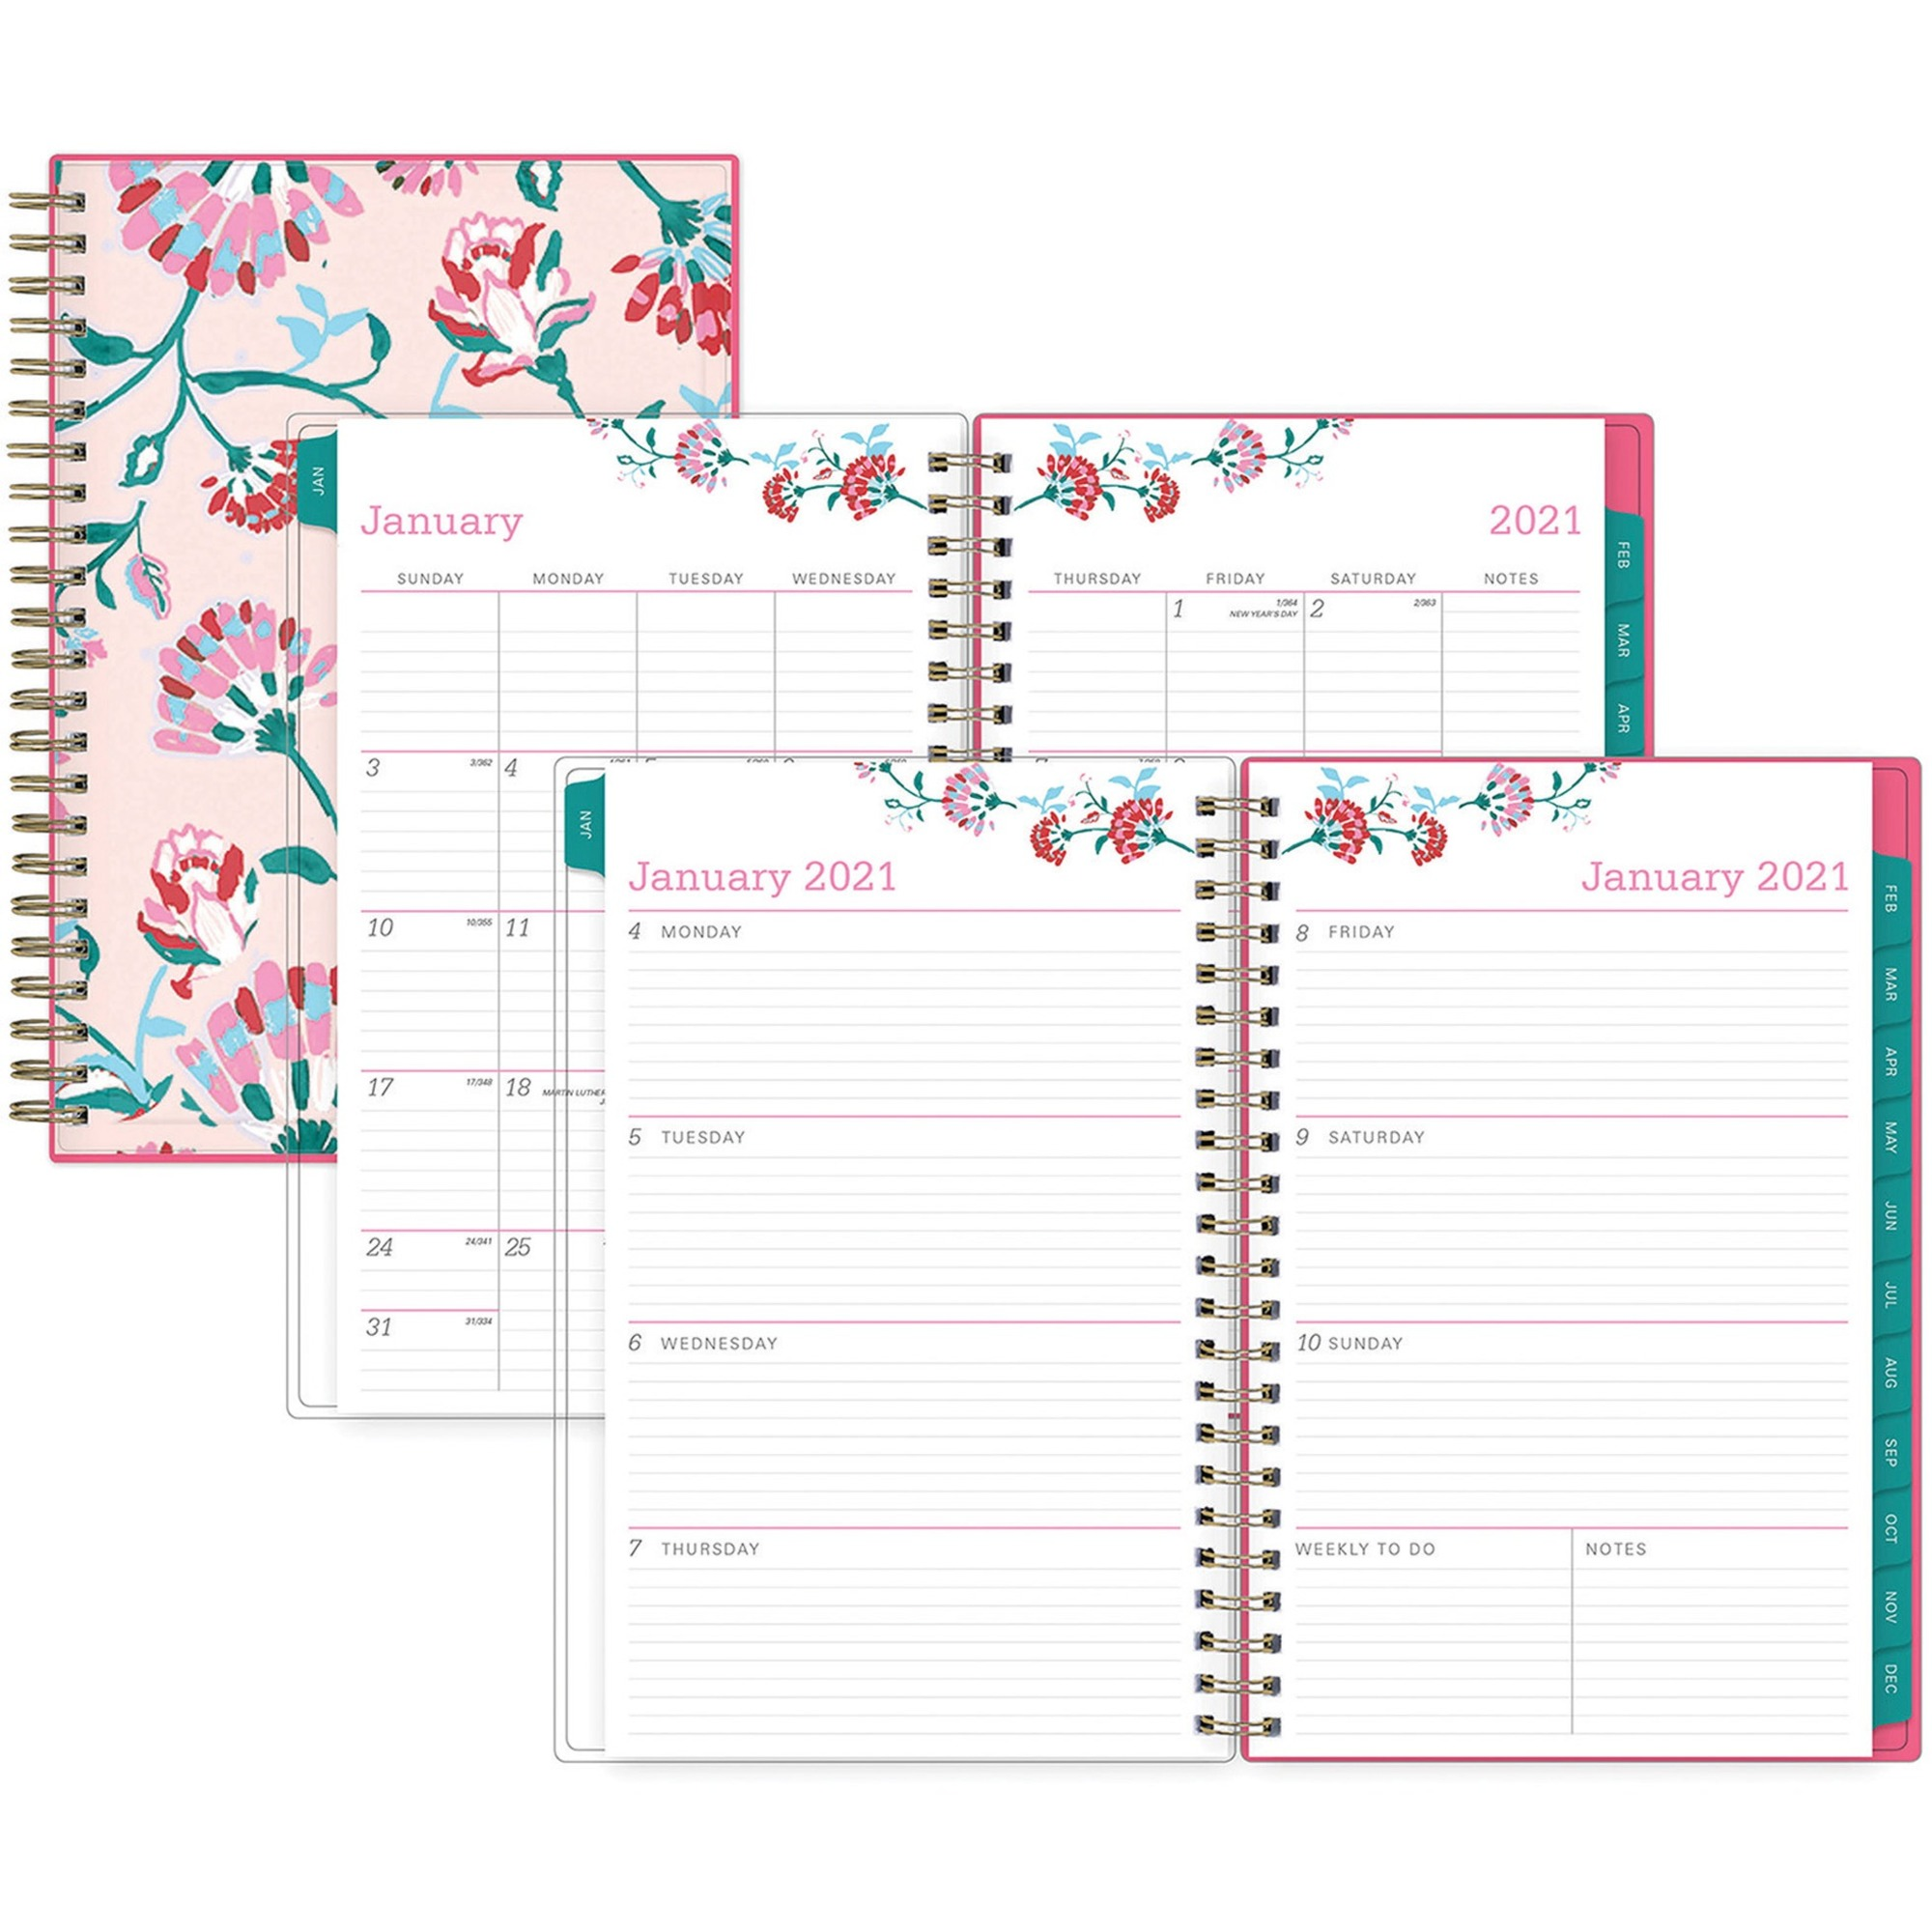 Blue Sky BCA Alexandra Small Weekly/Monthly Planner - Yes - Weekly, Monthly - 1 Year - January till December - 1 Week Double Page Layout - 5